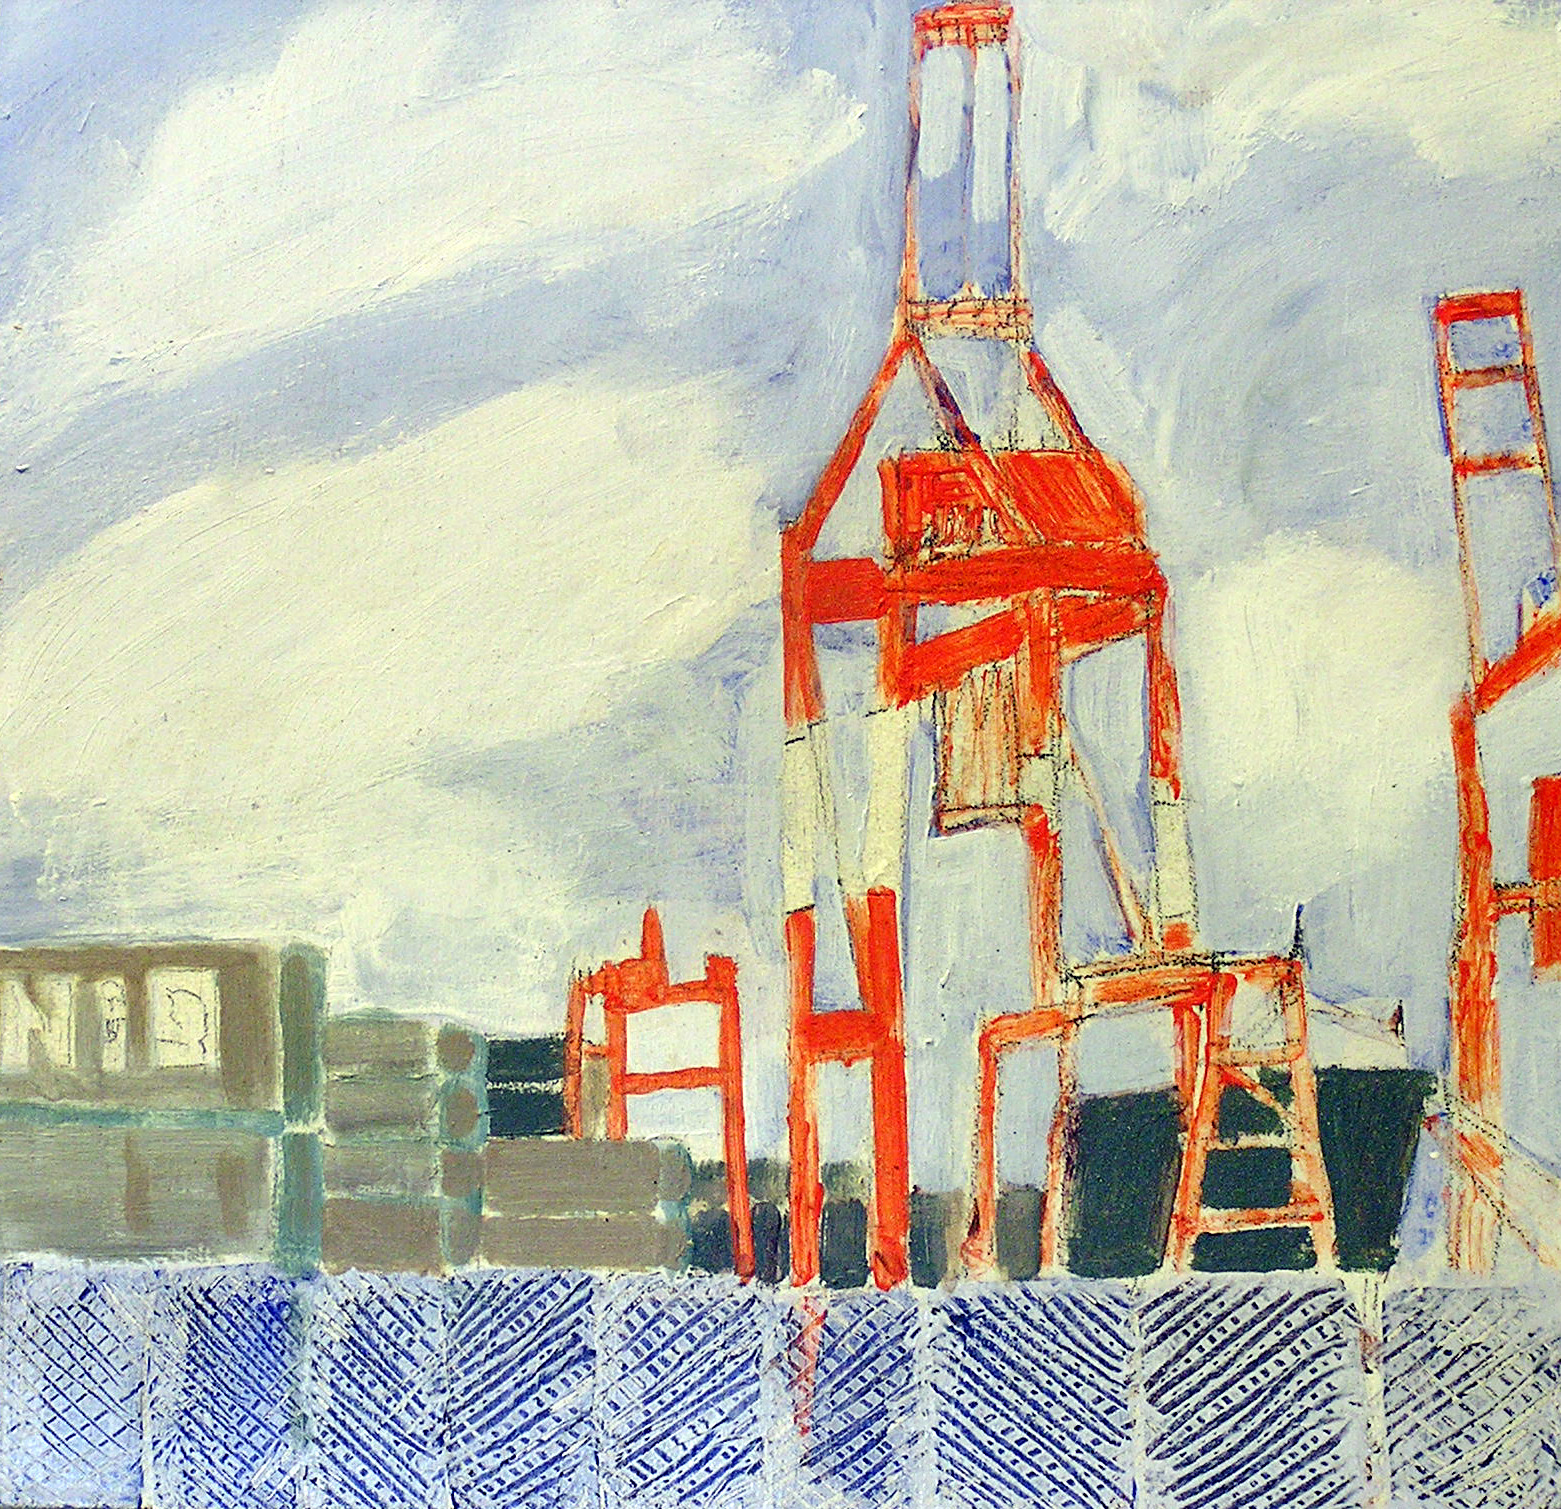 Halifax Harbour, Cranes